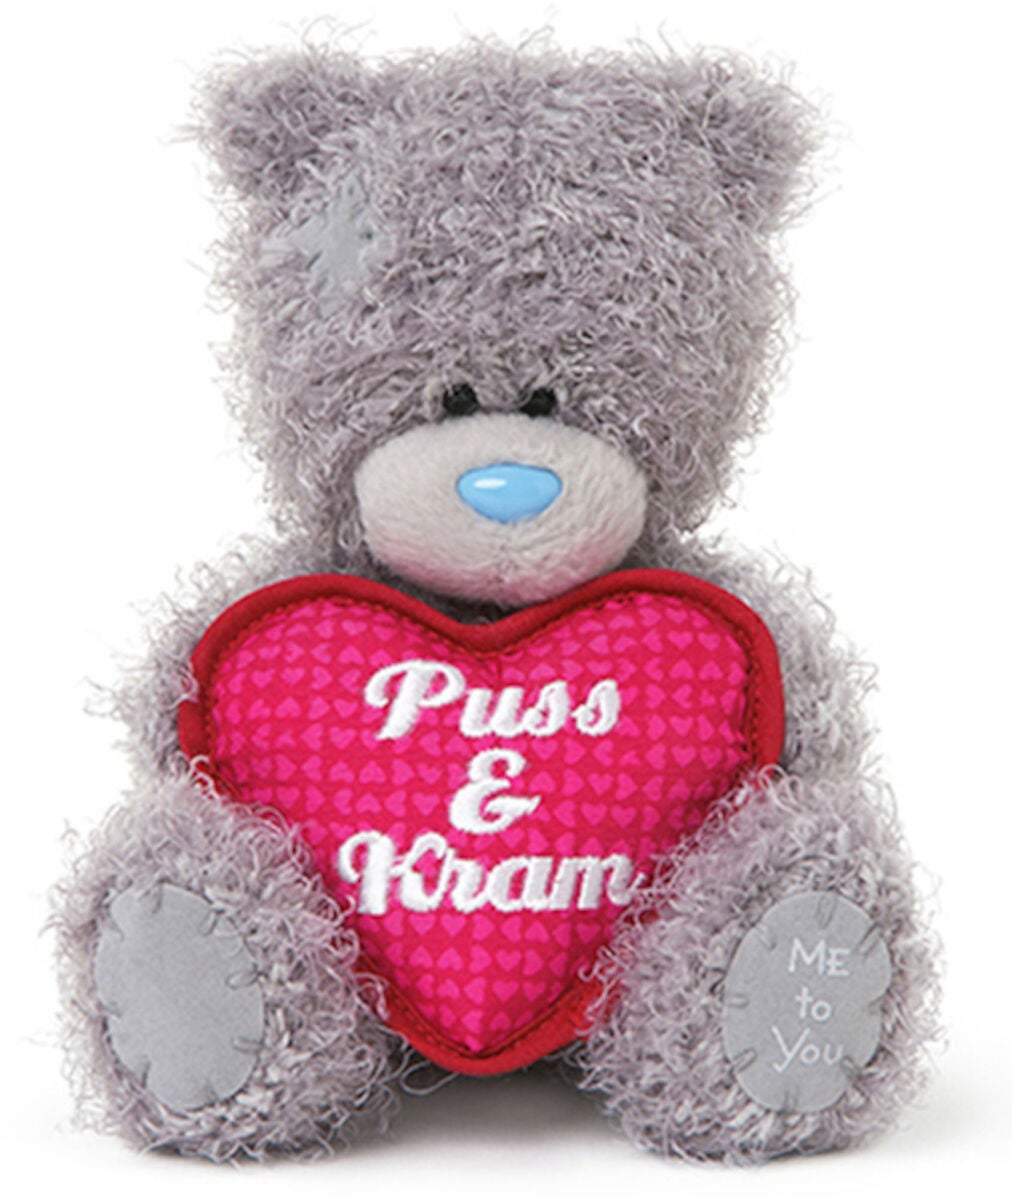 Me To You Kuscheltier Teddy Puss och Kram 13 cm